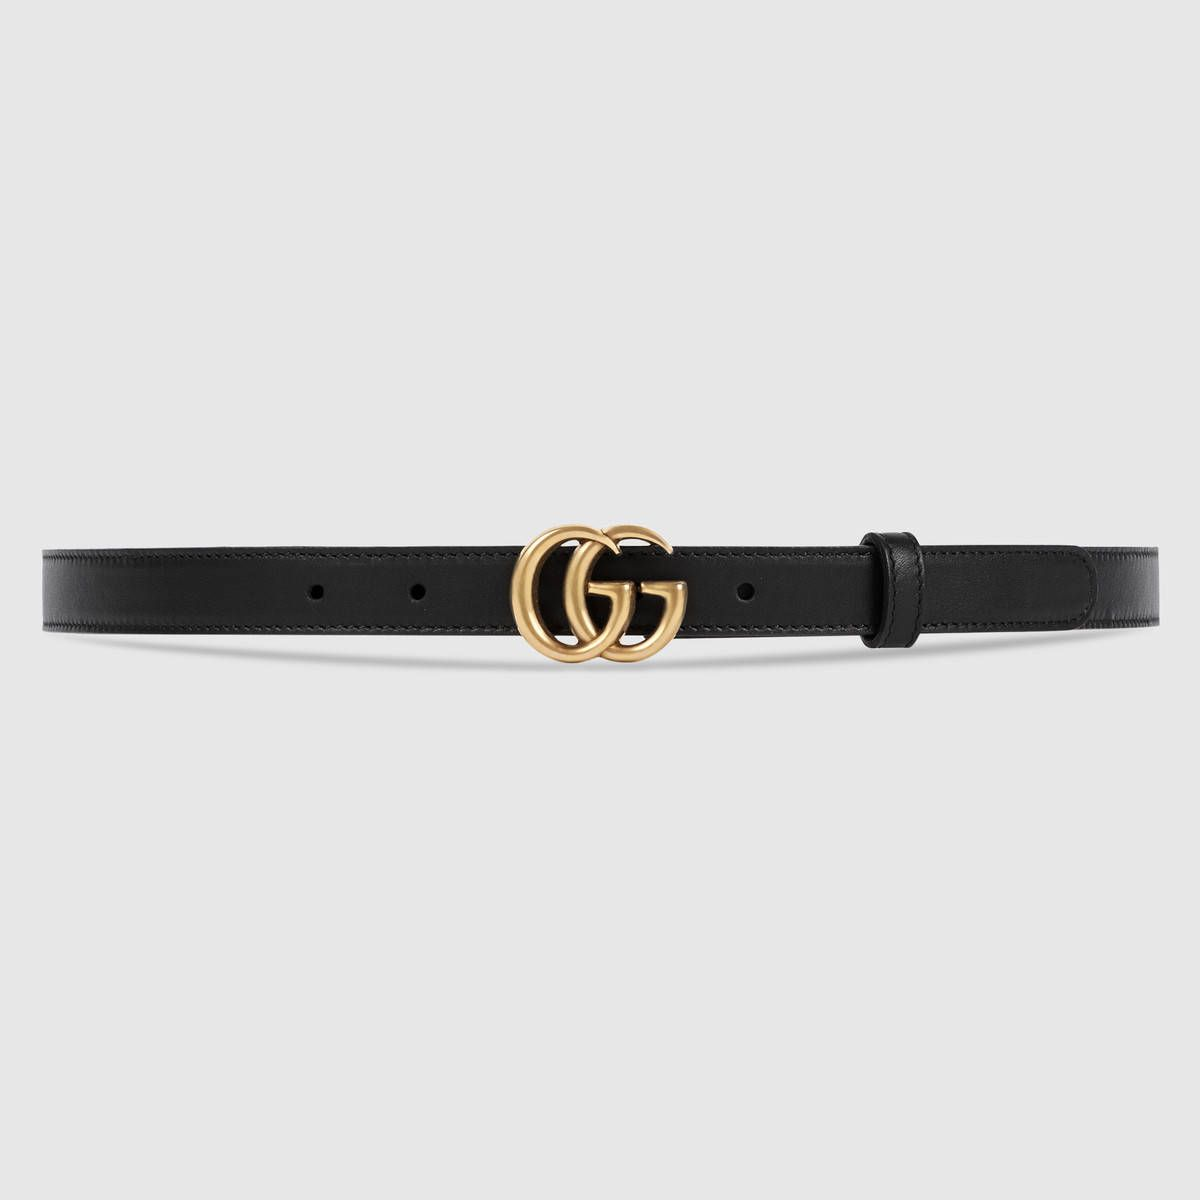 7bd11908256e Leather belt with double G buckle Ceinture Gucci Noir, Ceinture Gucci Femme,  Ceinture Femme